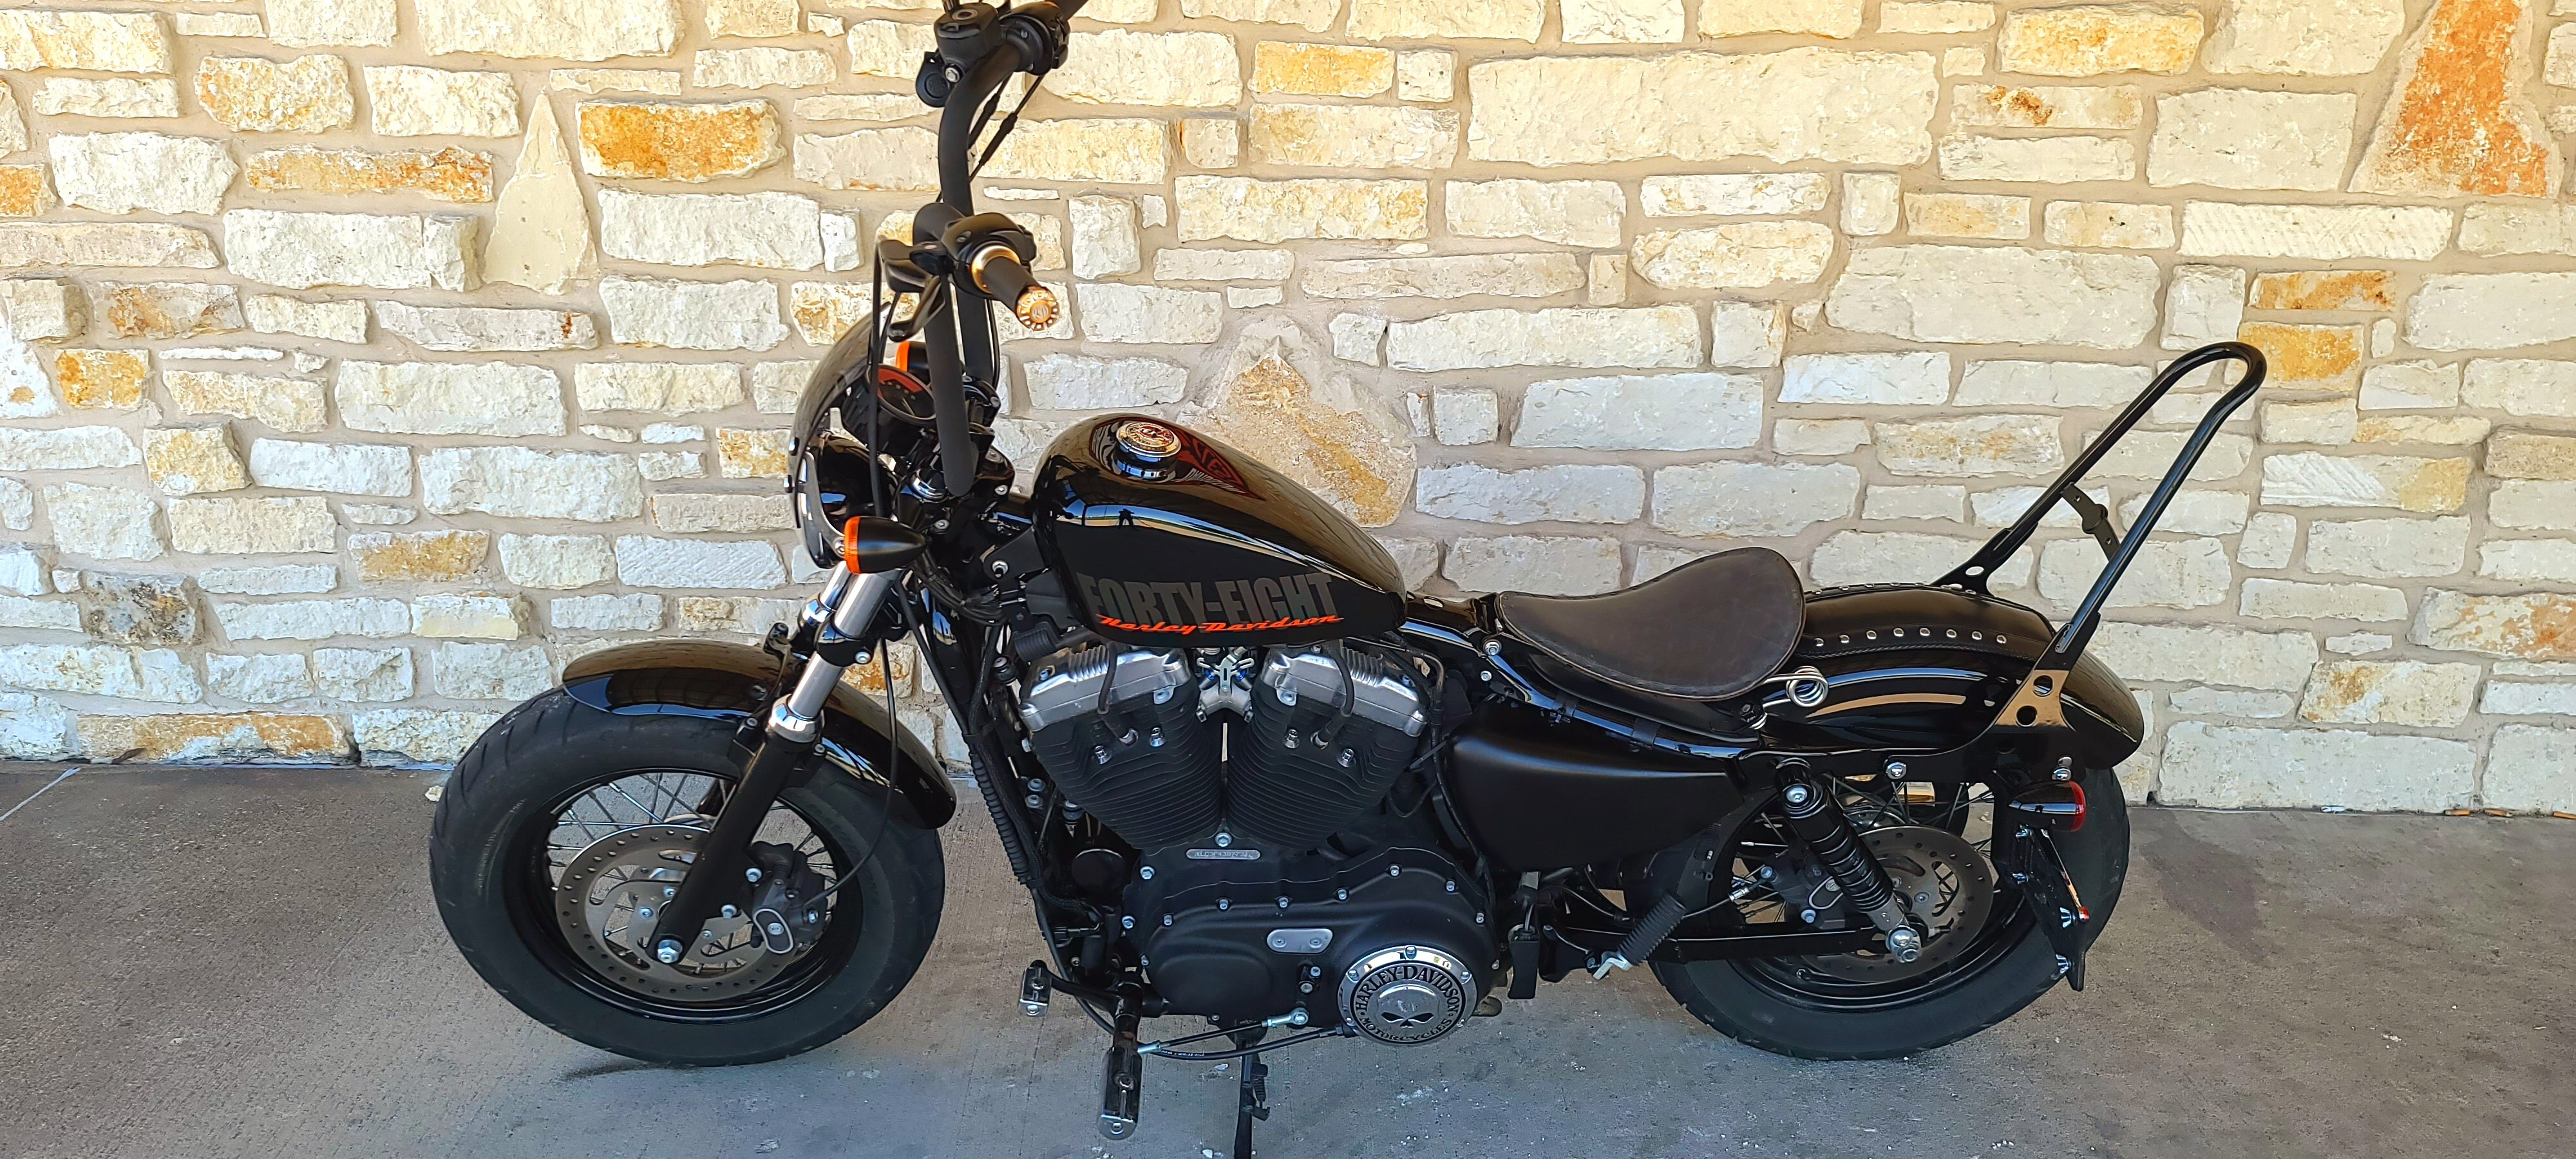 2015 Harley-Davidson Sportster Forty-Eight at Harley-Davidson of Waco